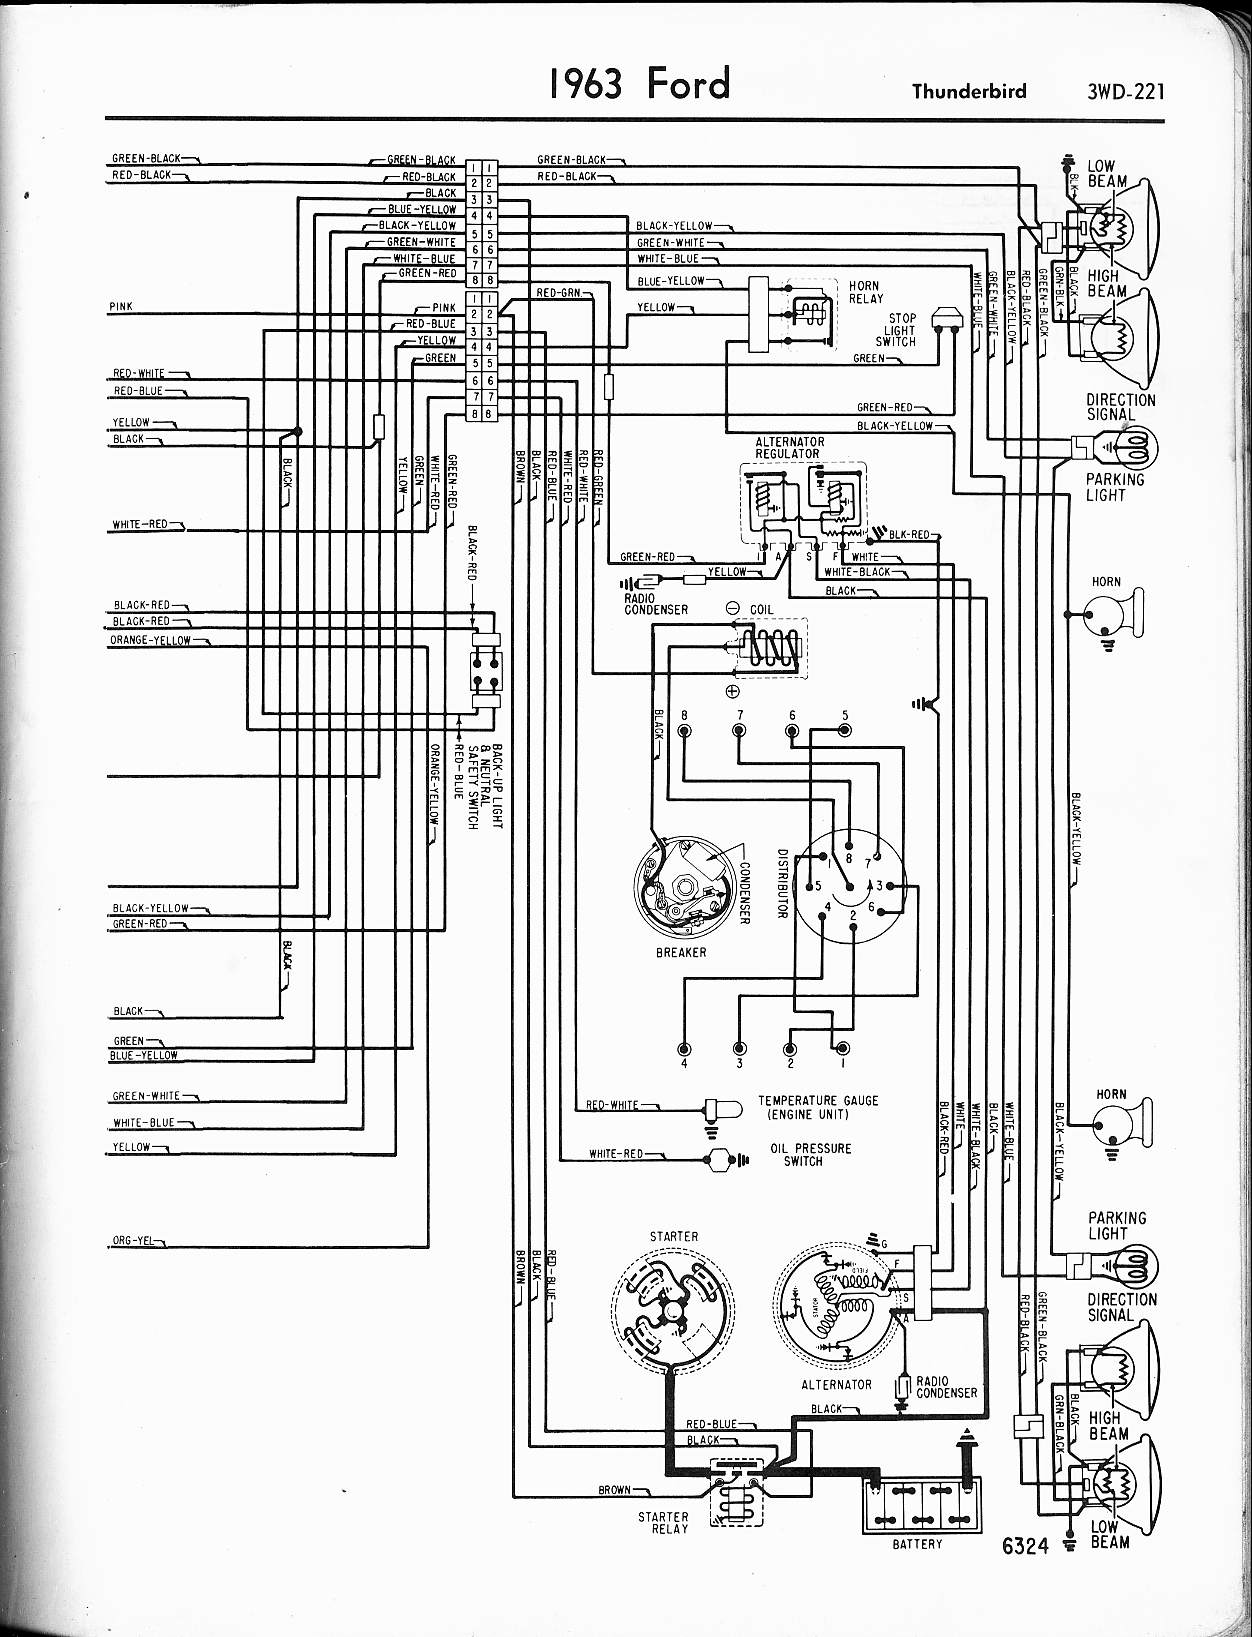 64 Mustang Turn Signal Wiring Diagram Schematic Archive Of In An Eg H22 Distributor 1956 Thunderbird Just Data Rh Ag Skiphire Co Uk